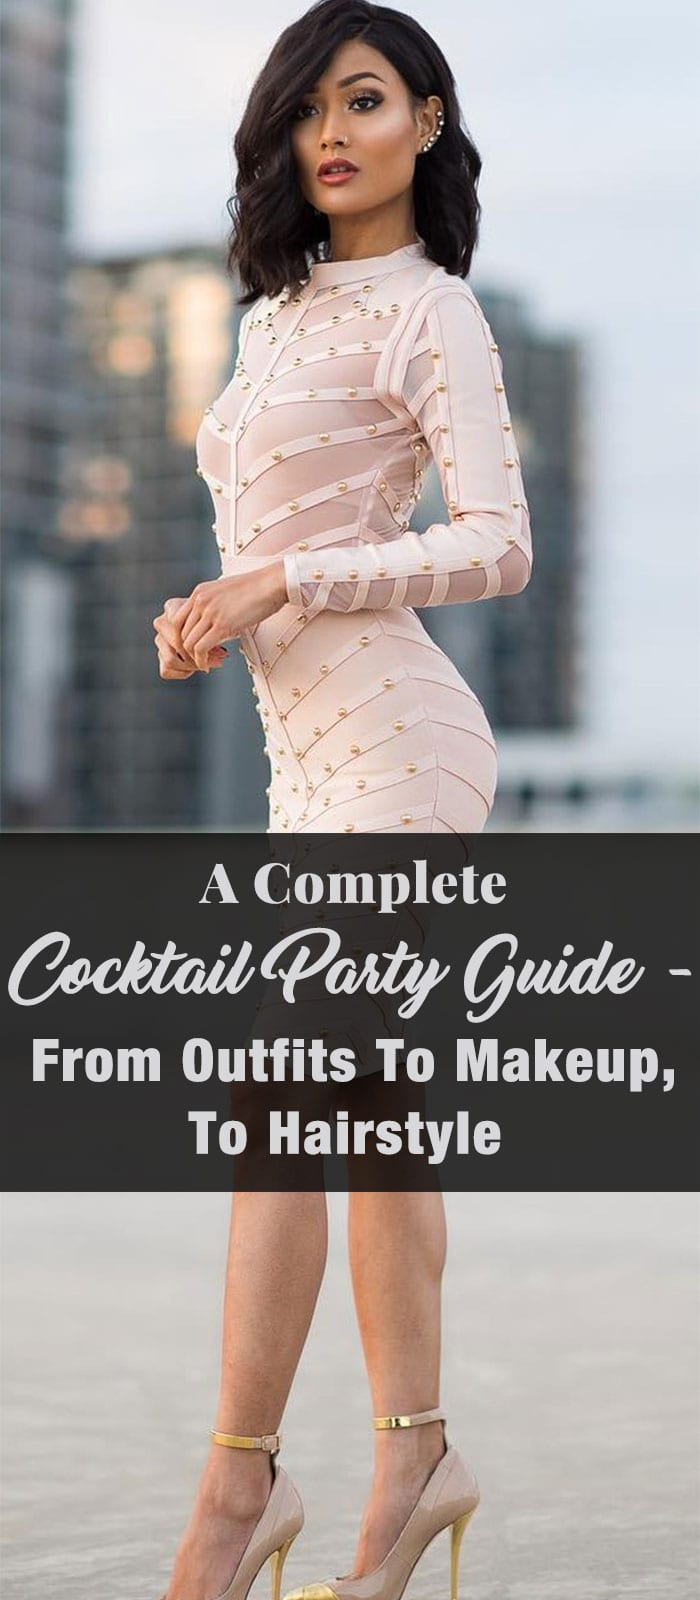 A Complete Cocktail Party Guide – From Outfits To Makeup, To Hairstyle